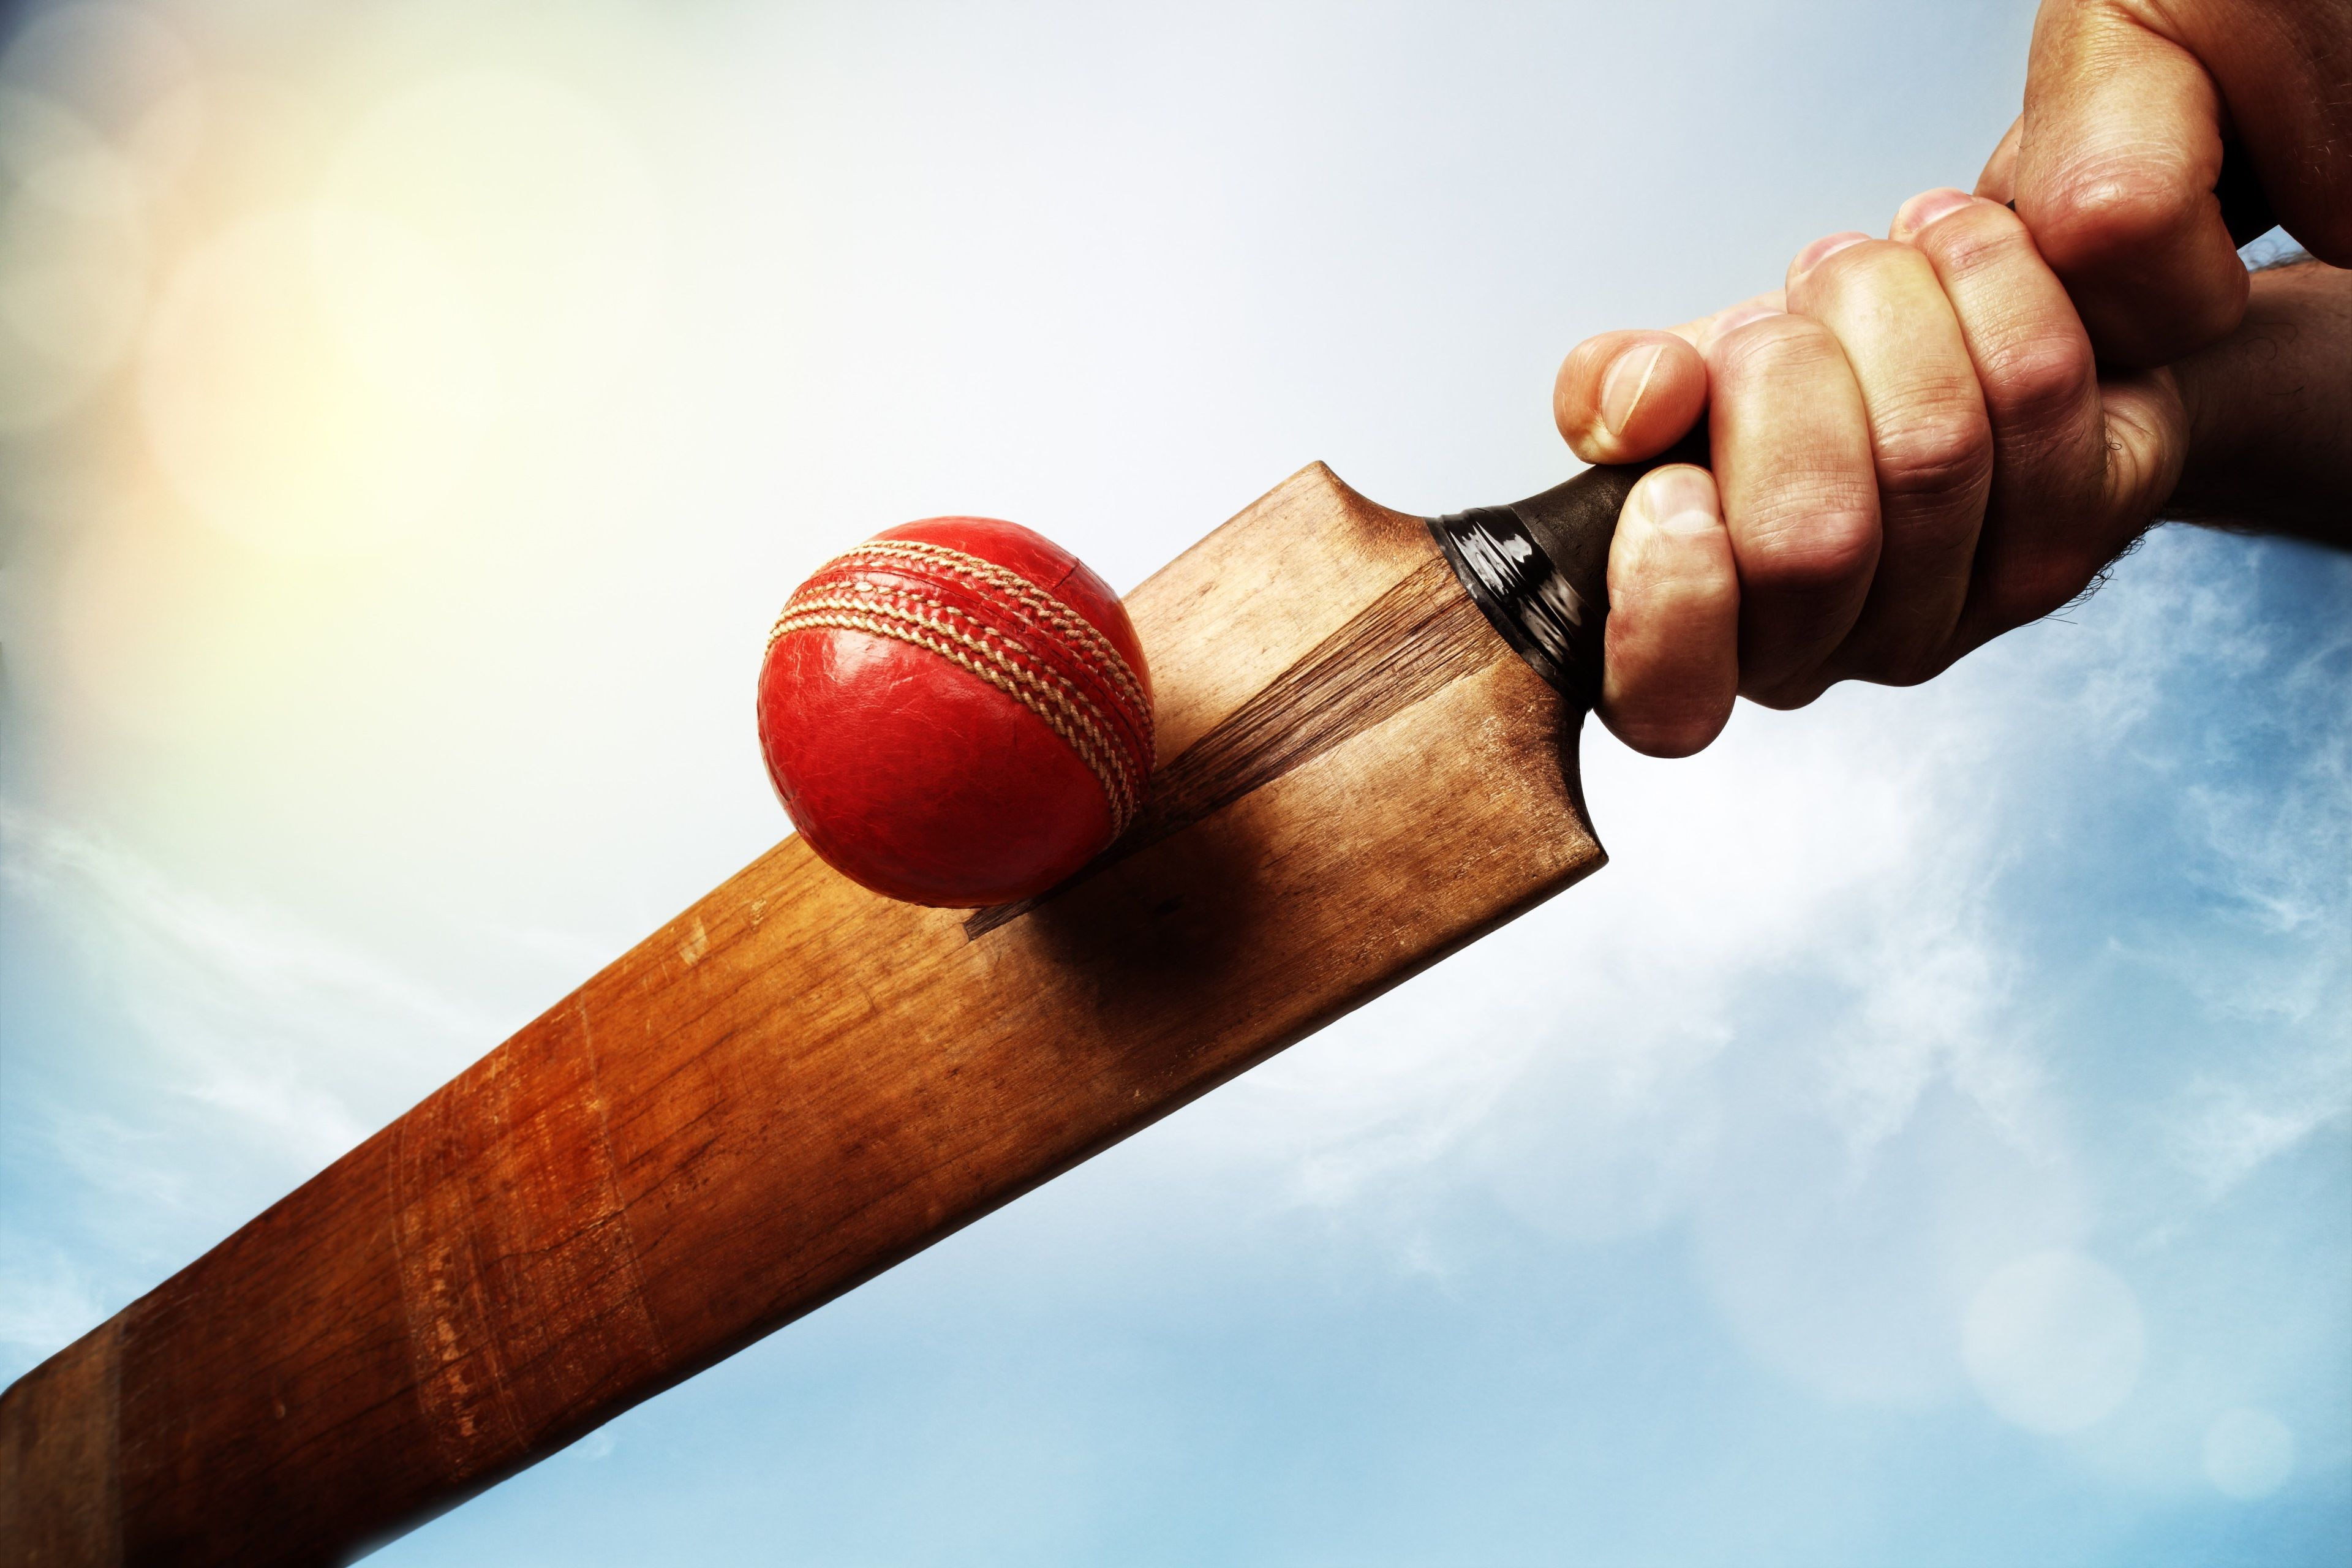 3840x2560 cricket ball 4k amazing wallpaper hd for desktop